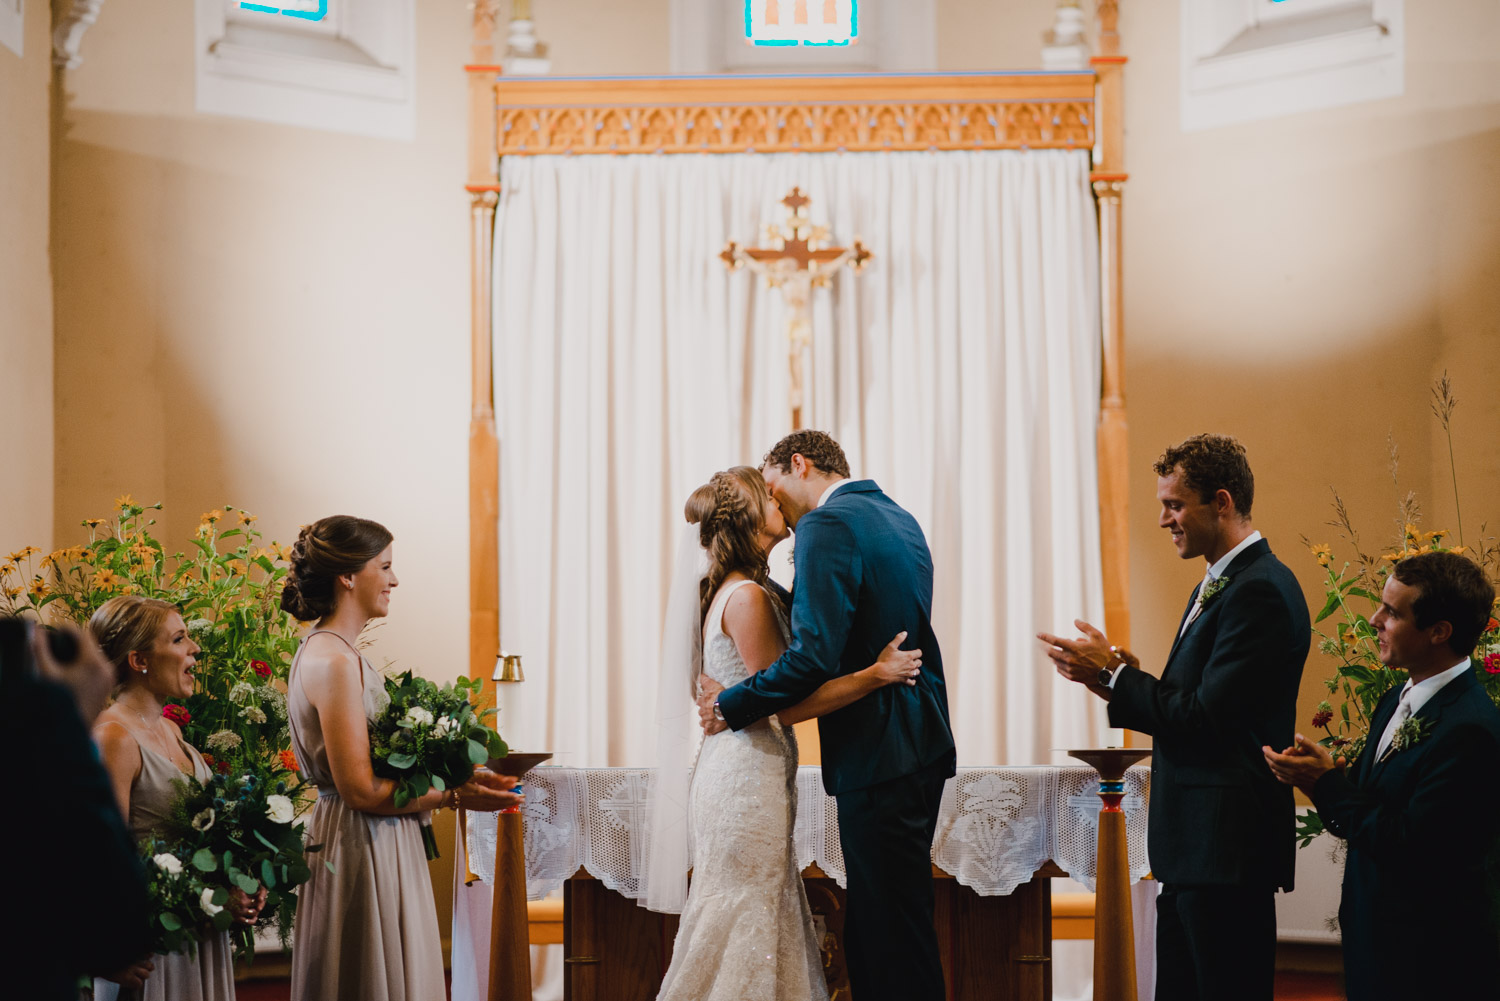 The bride and groom share their first kiss as a married couple